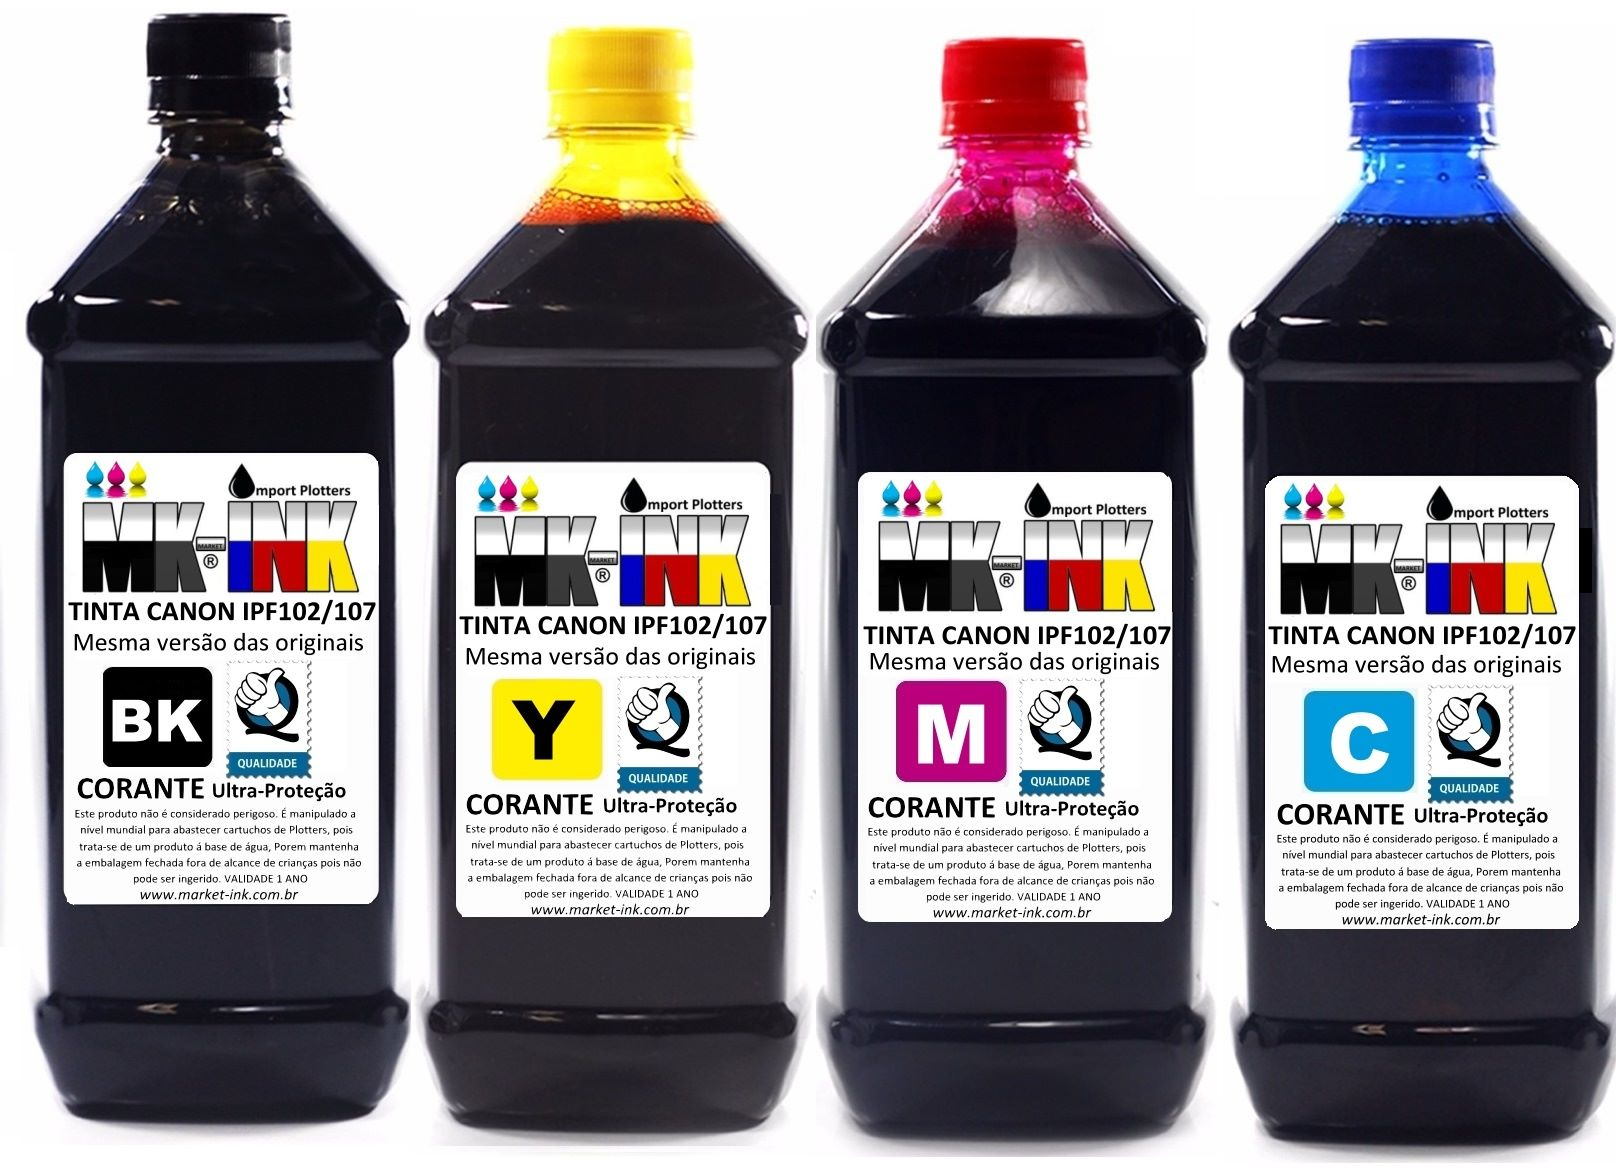 Tinta 250ml Plotter HP 4 cores exclusiva p/ Plotter HP 500, 510, 520, 800, 815, 820, 70, 100, 110, 111, 120 ..